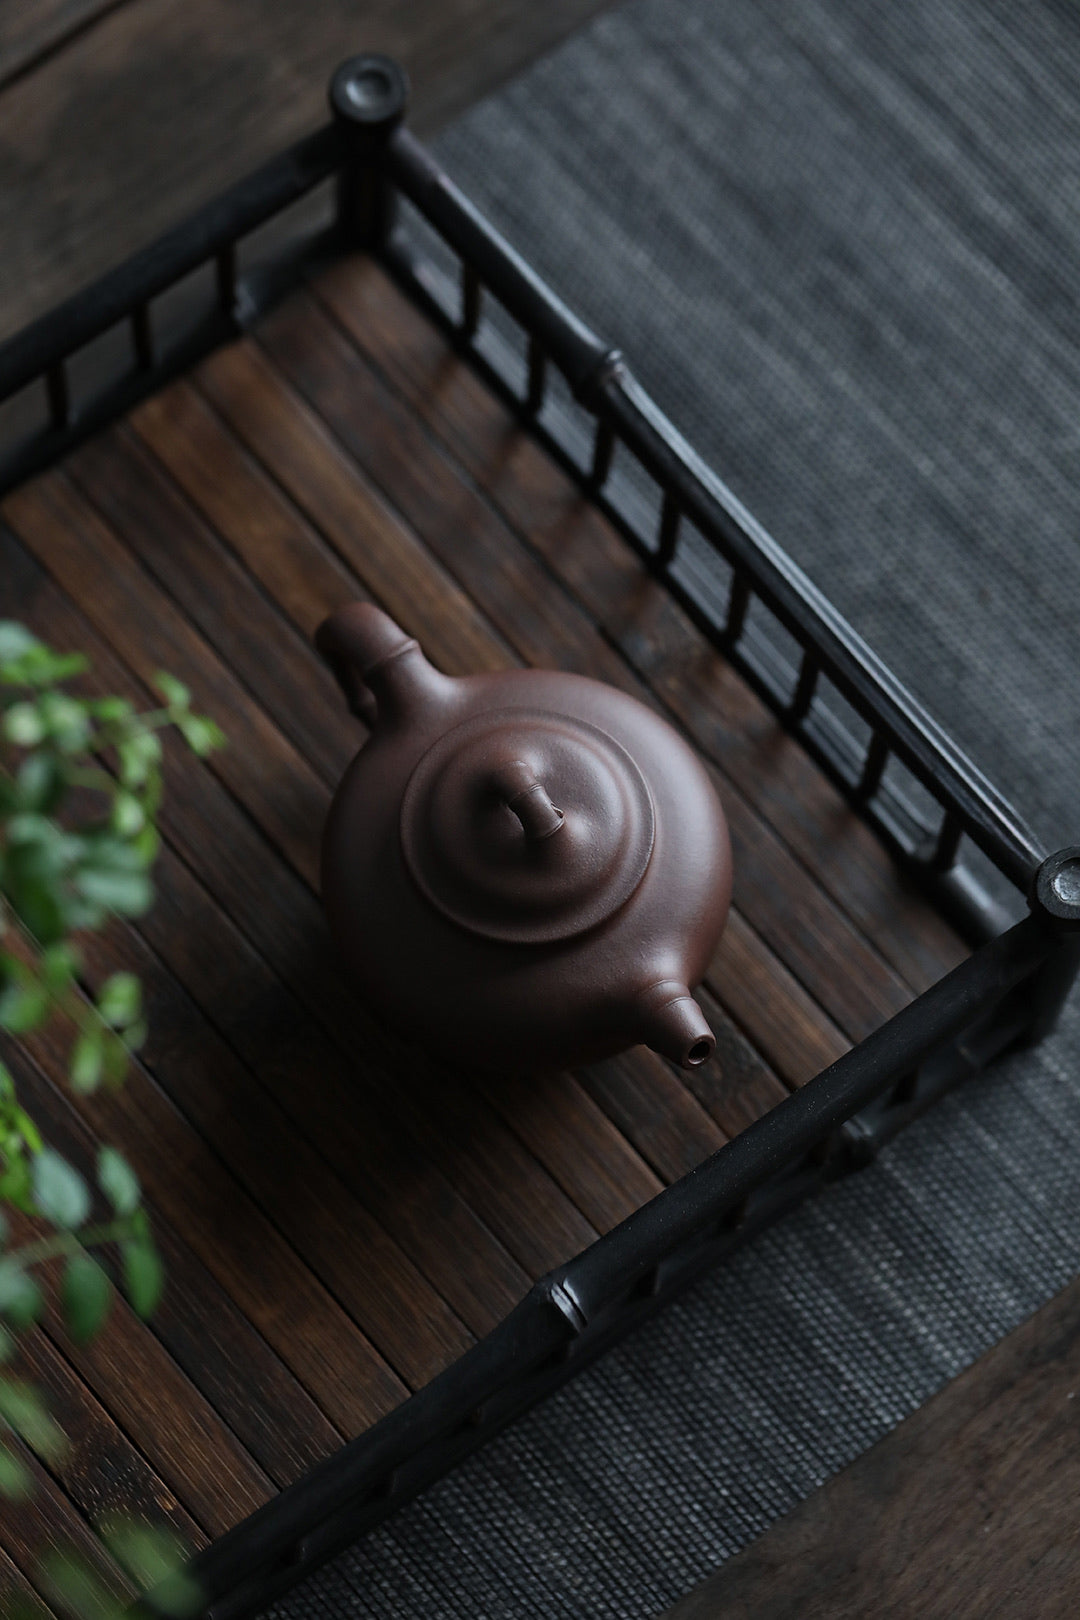 平安竹 Ping'an Zhu Zini 原矿紫泥 佘荣飞 - The Phans Yixing Zisha Teapot